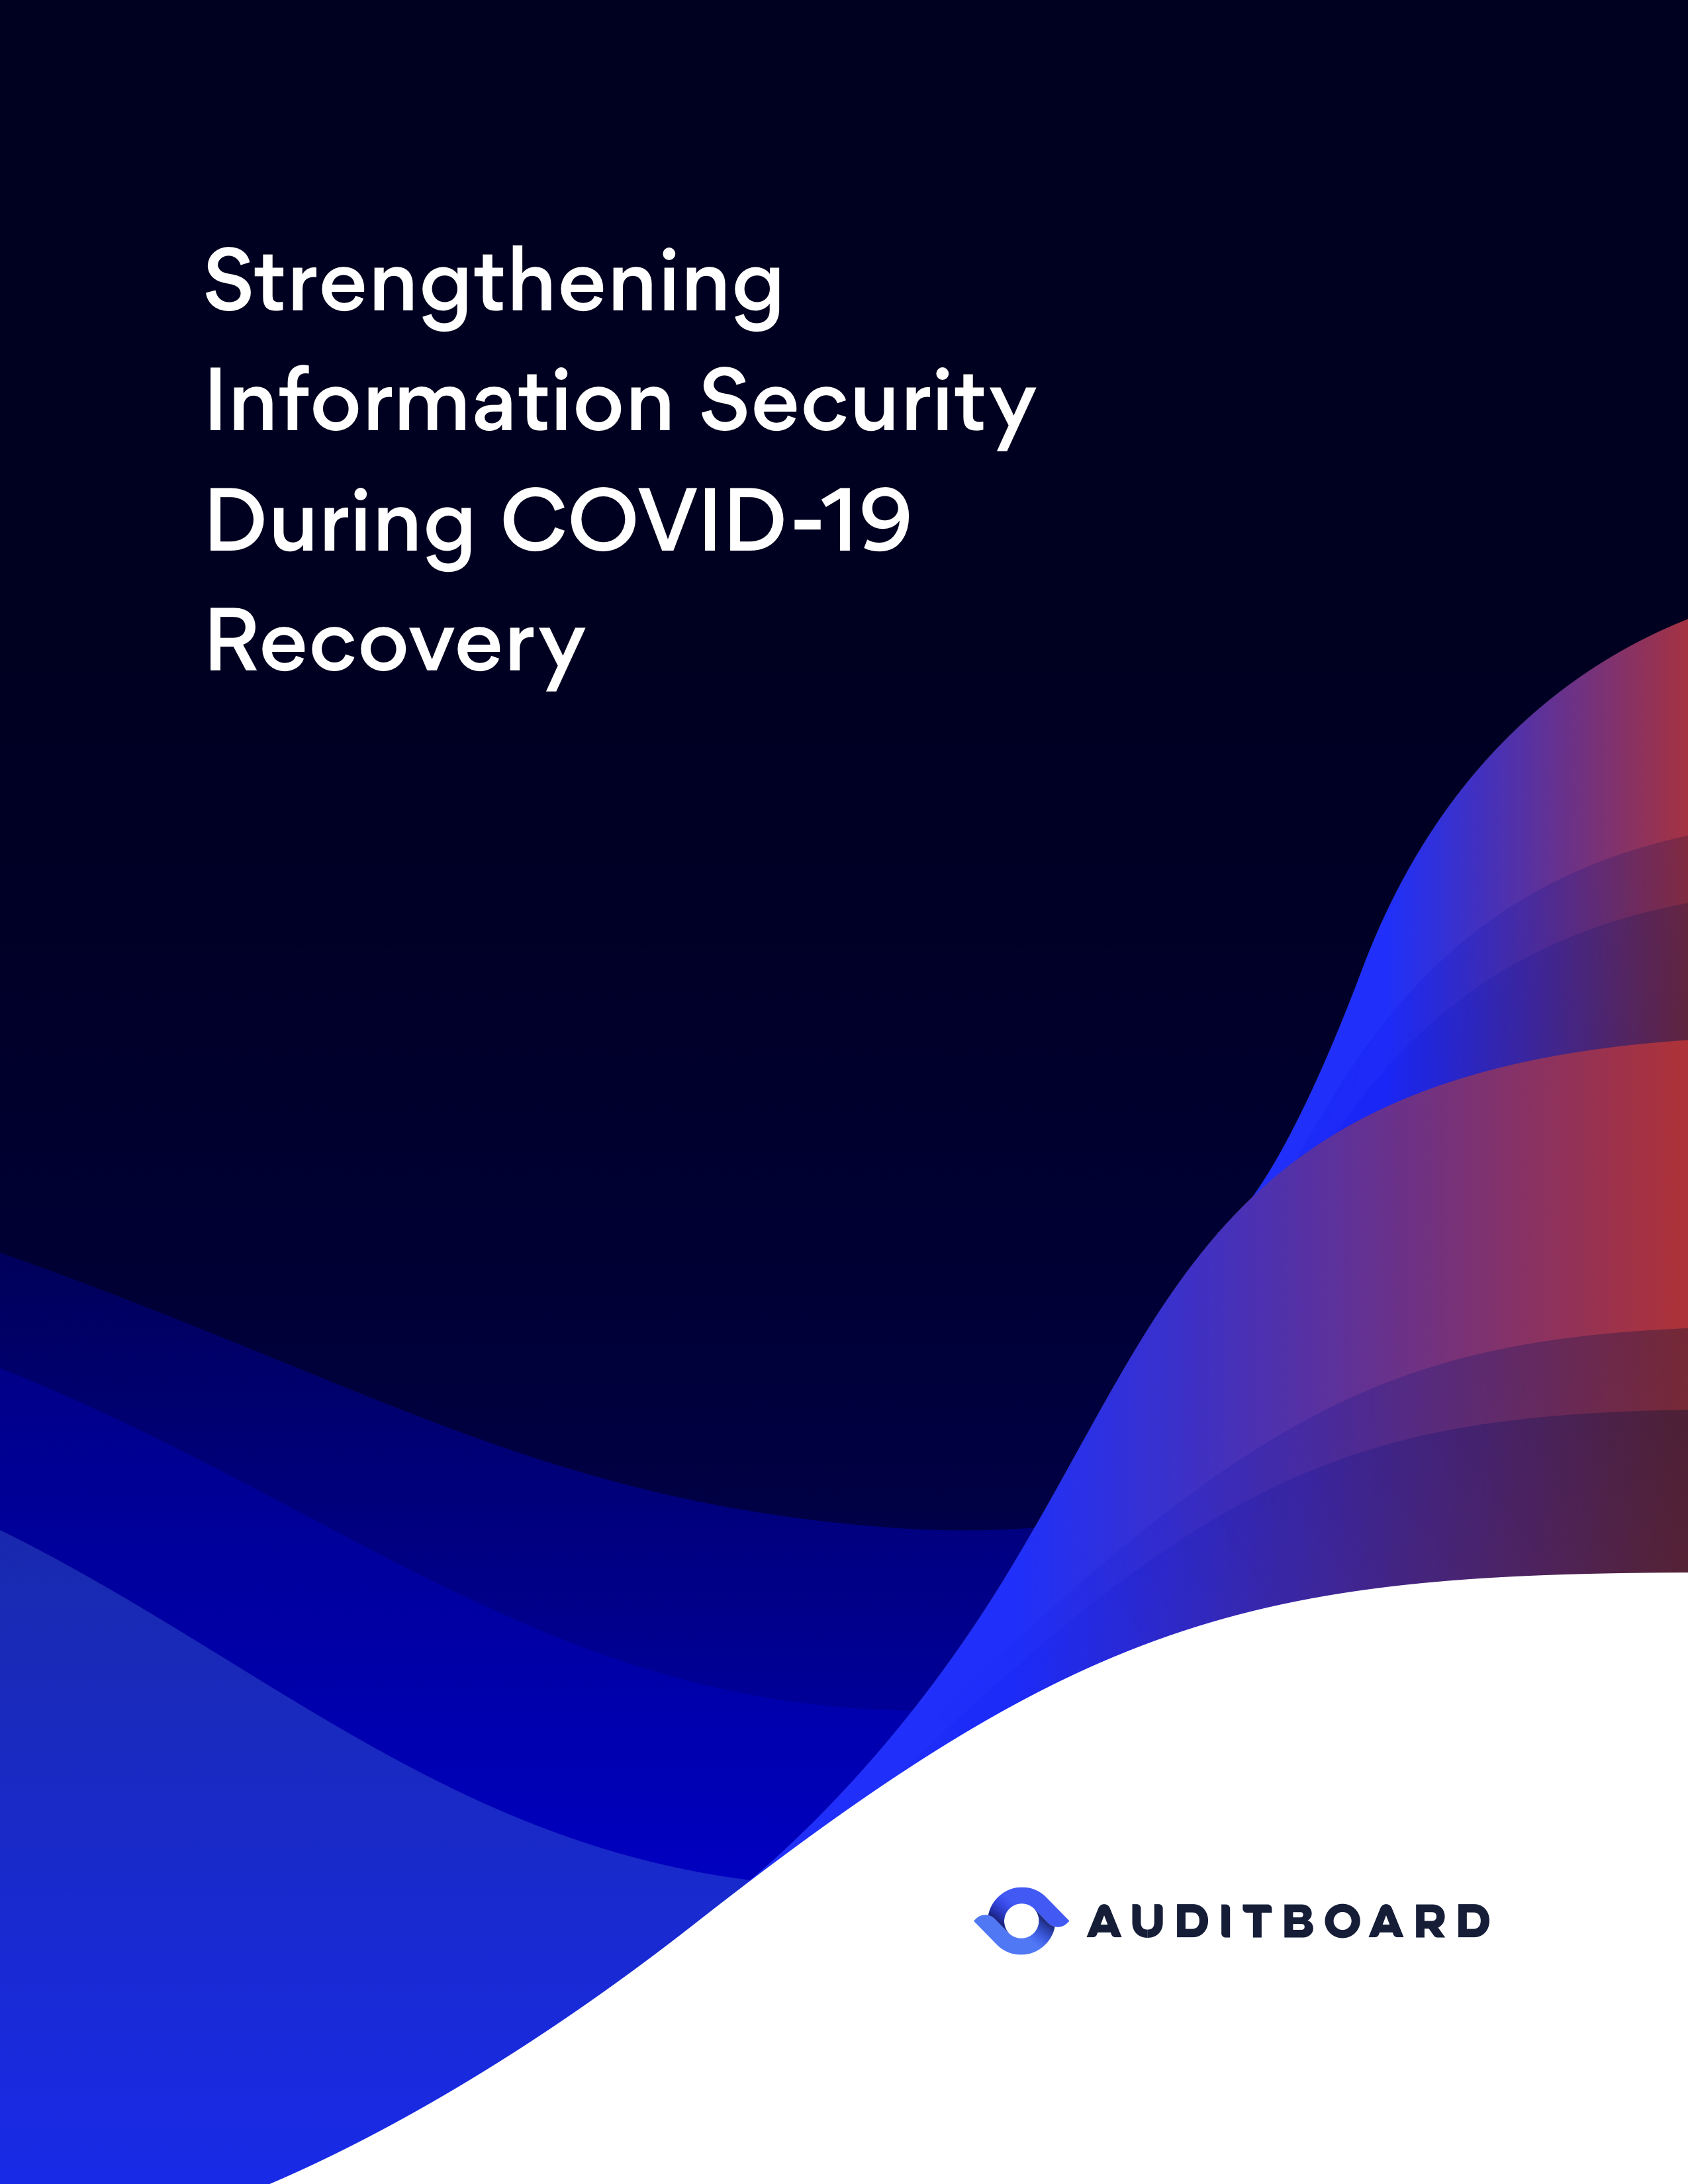 Strengthening Information Security During COVID-19 Recovery